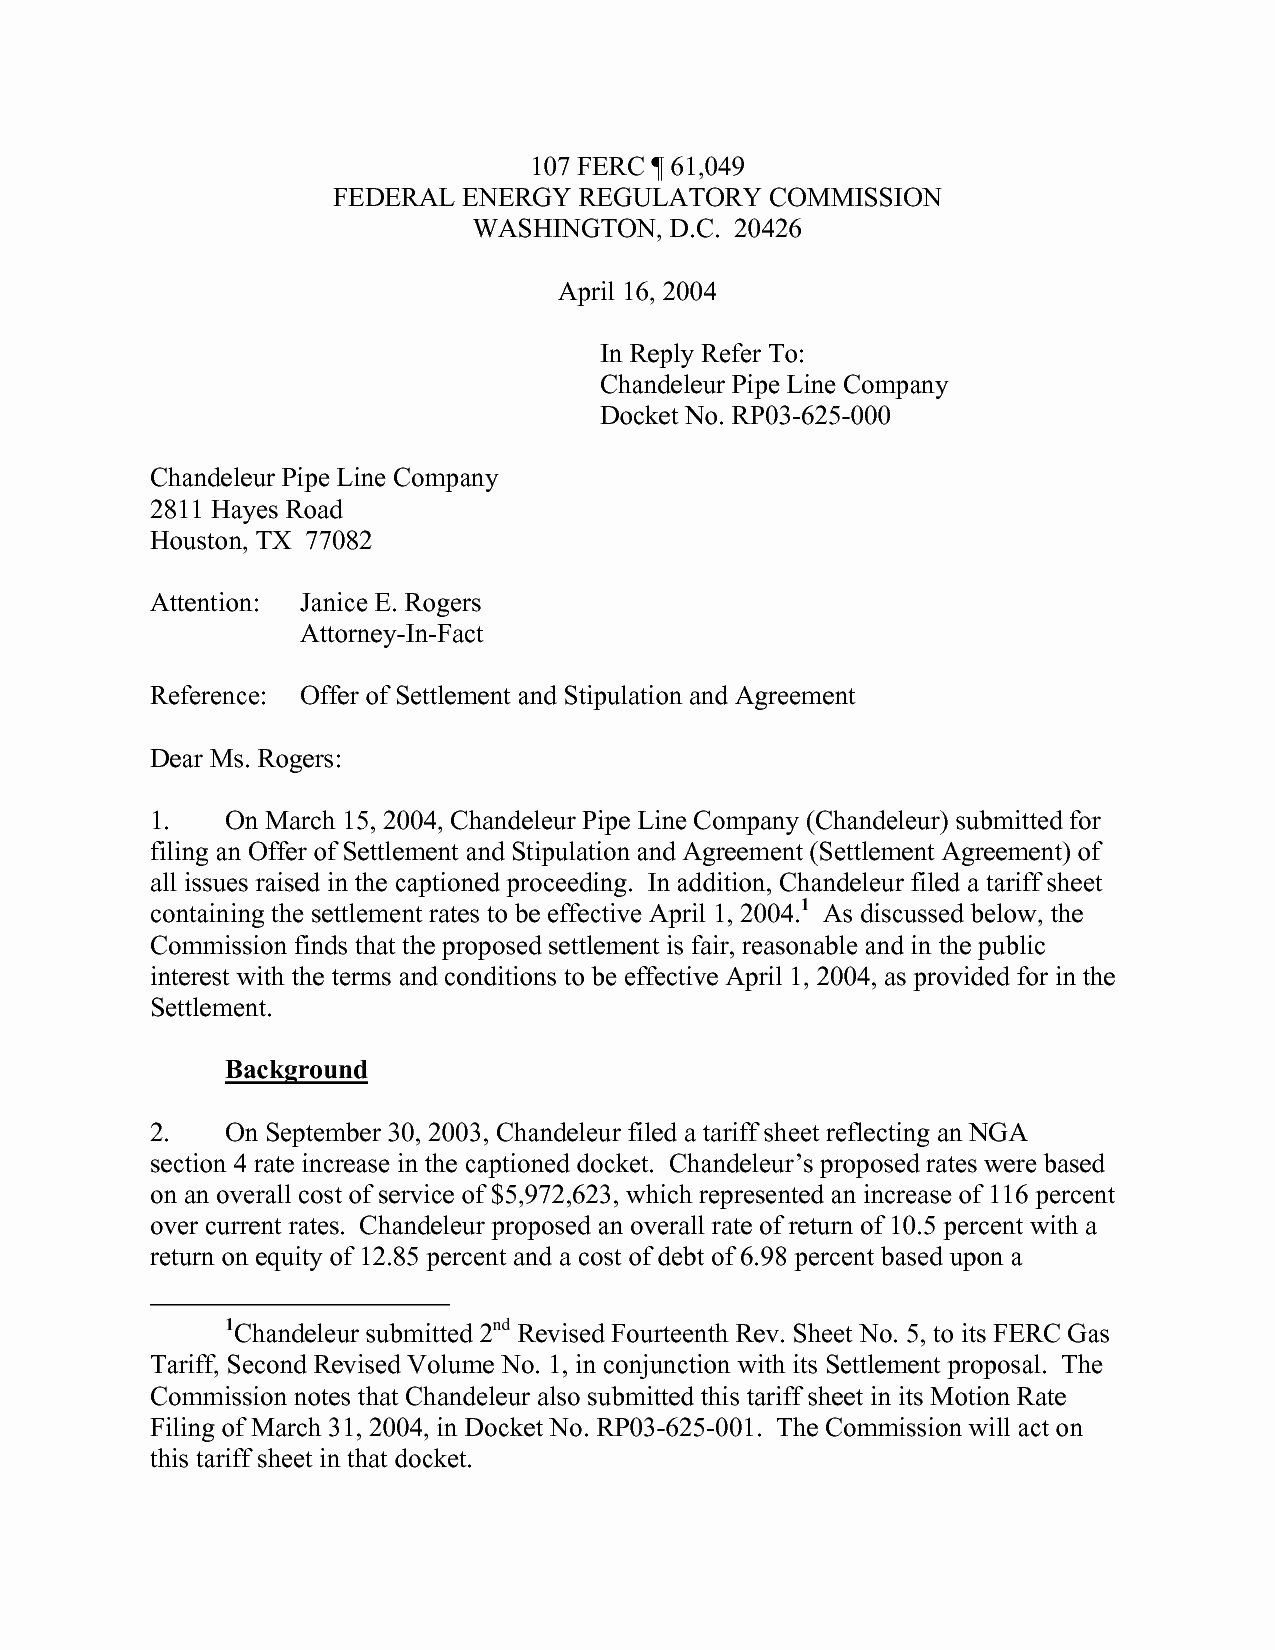 Settlement Proposal Template